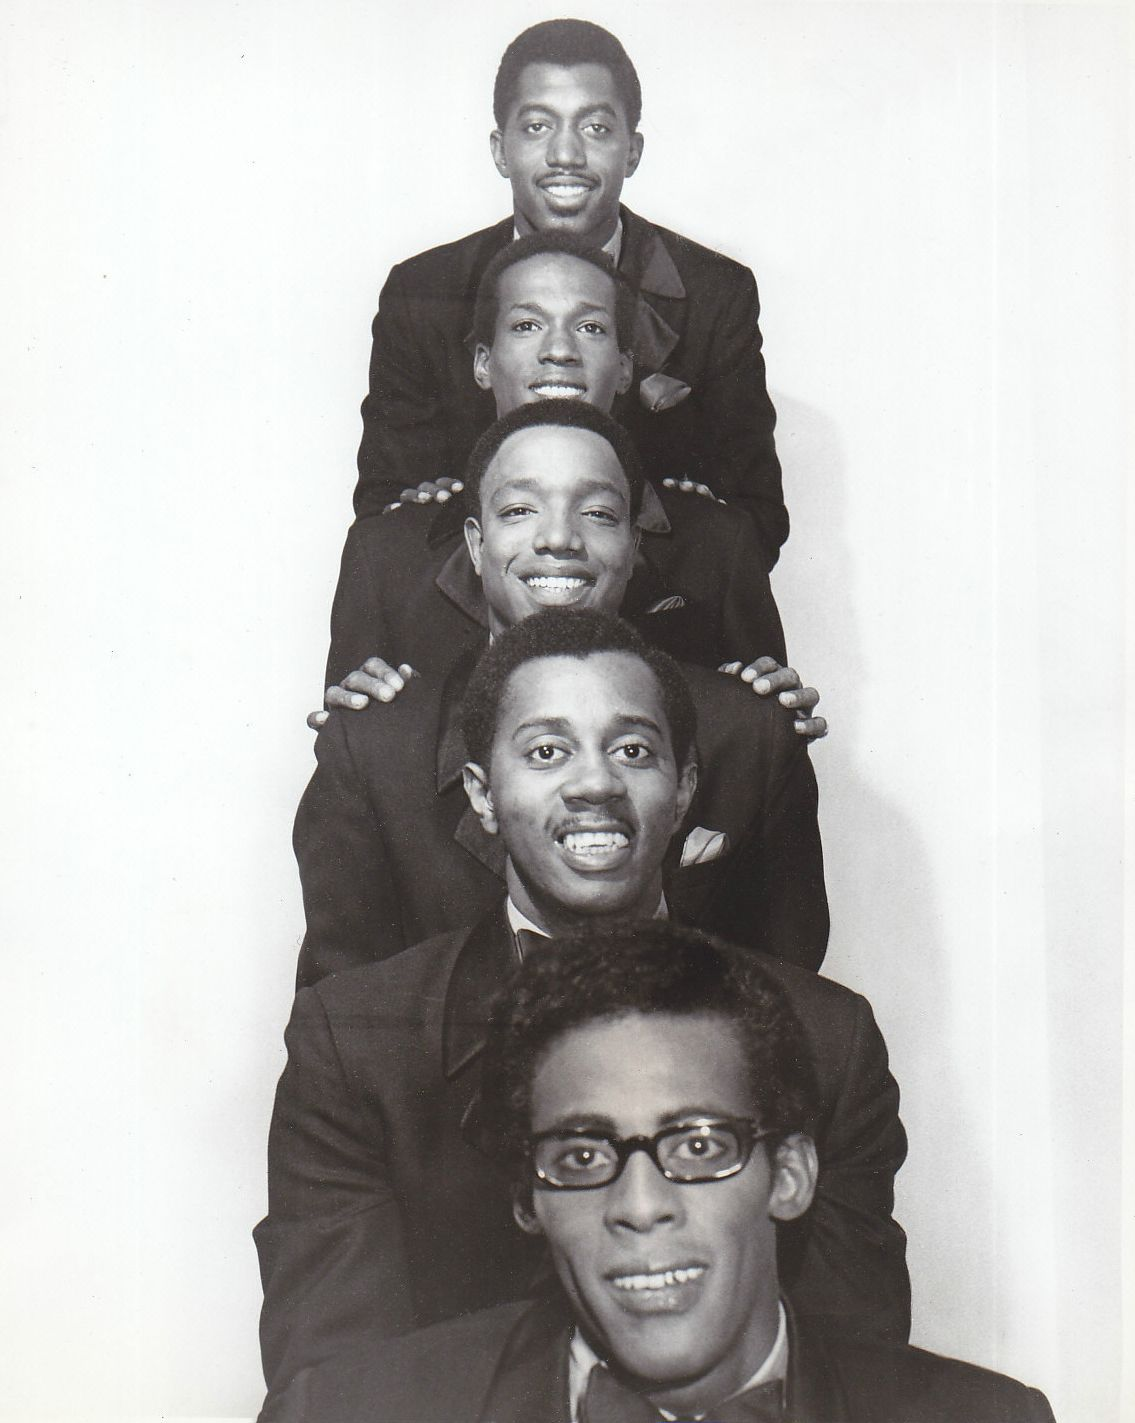 motown group the temptations 1970 with david and eddie gone